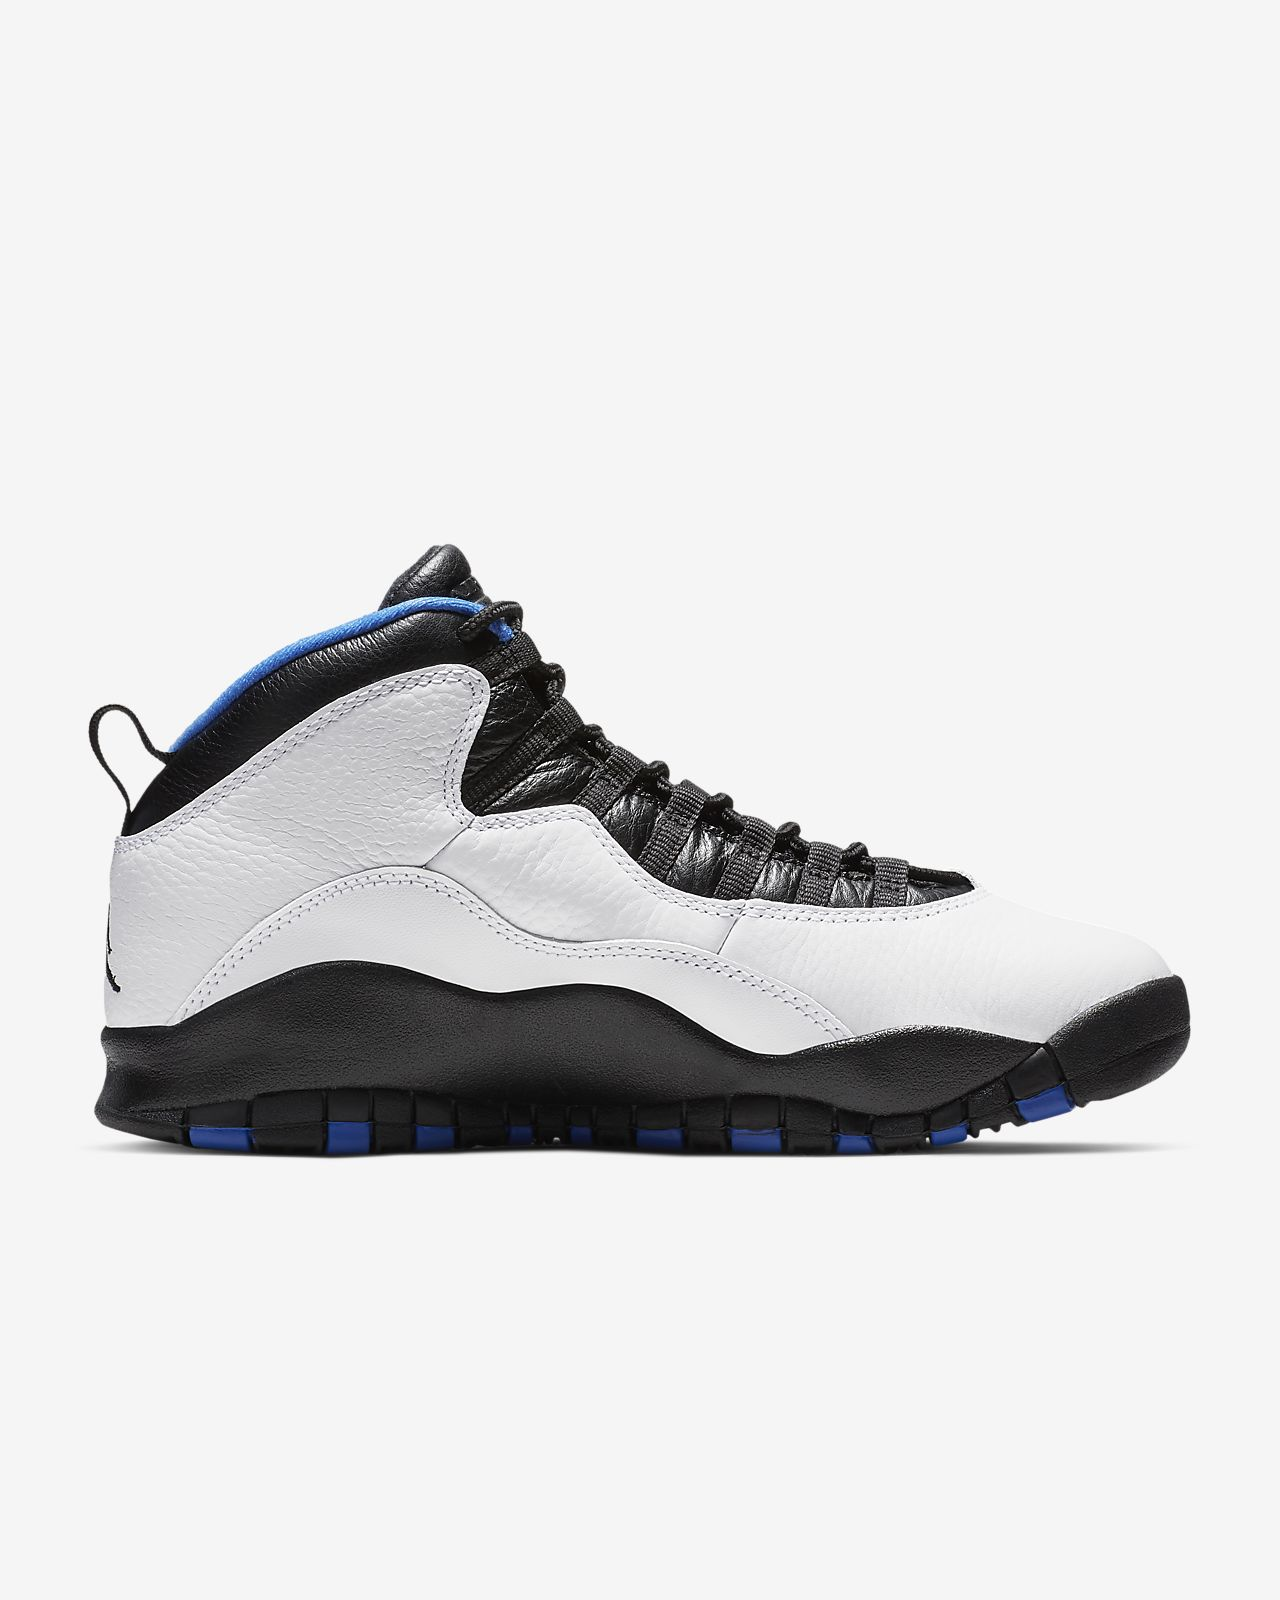 4f8a56c70475 Air Jordan 10 Retro Men s Shoe. Nike.com